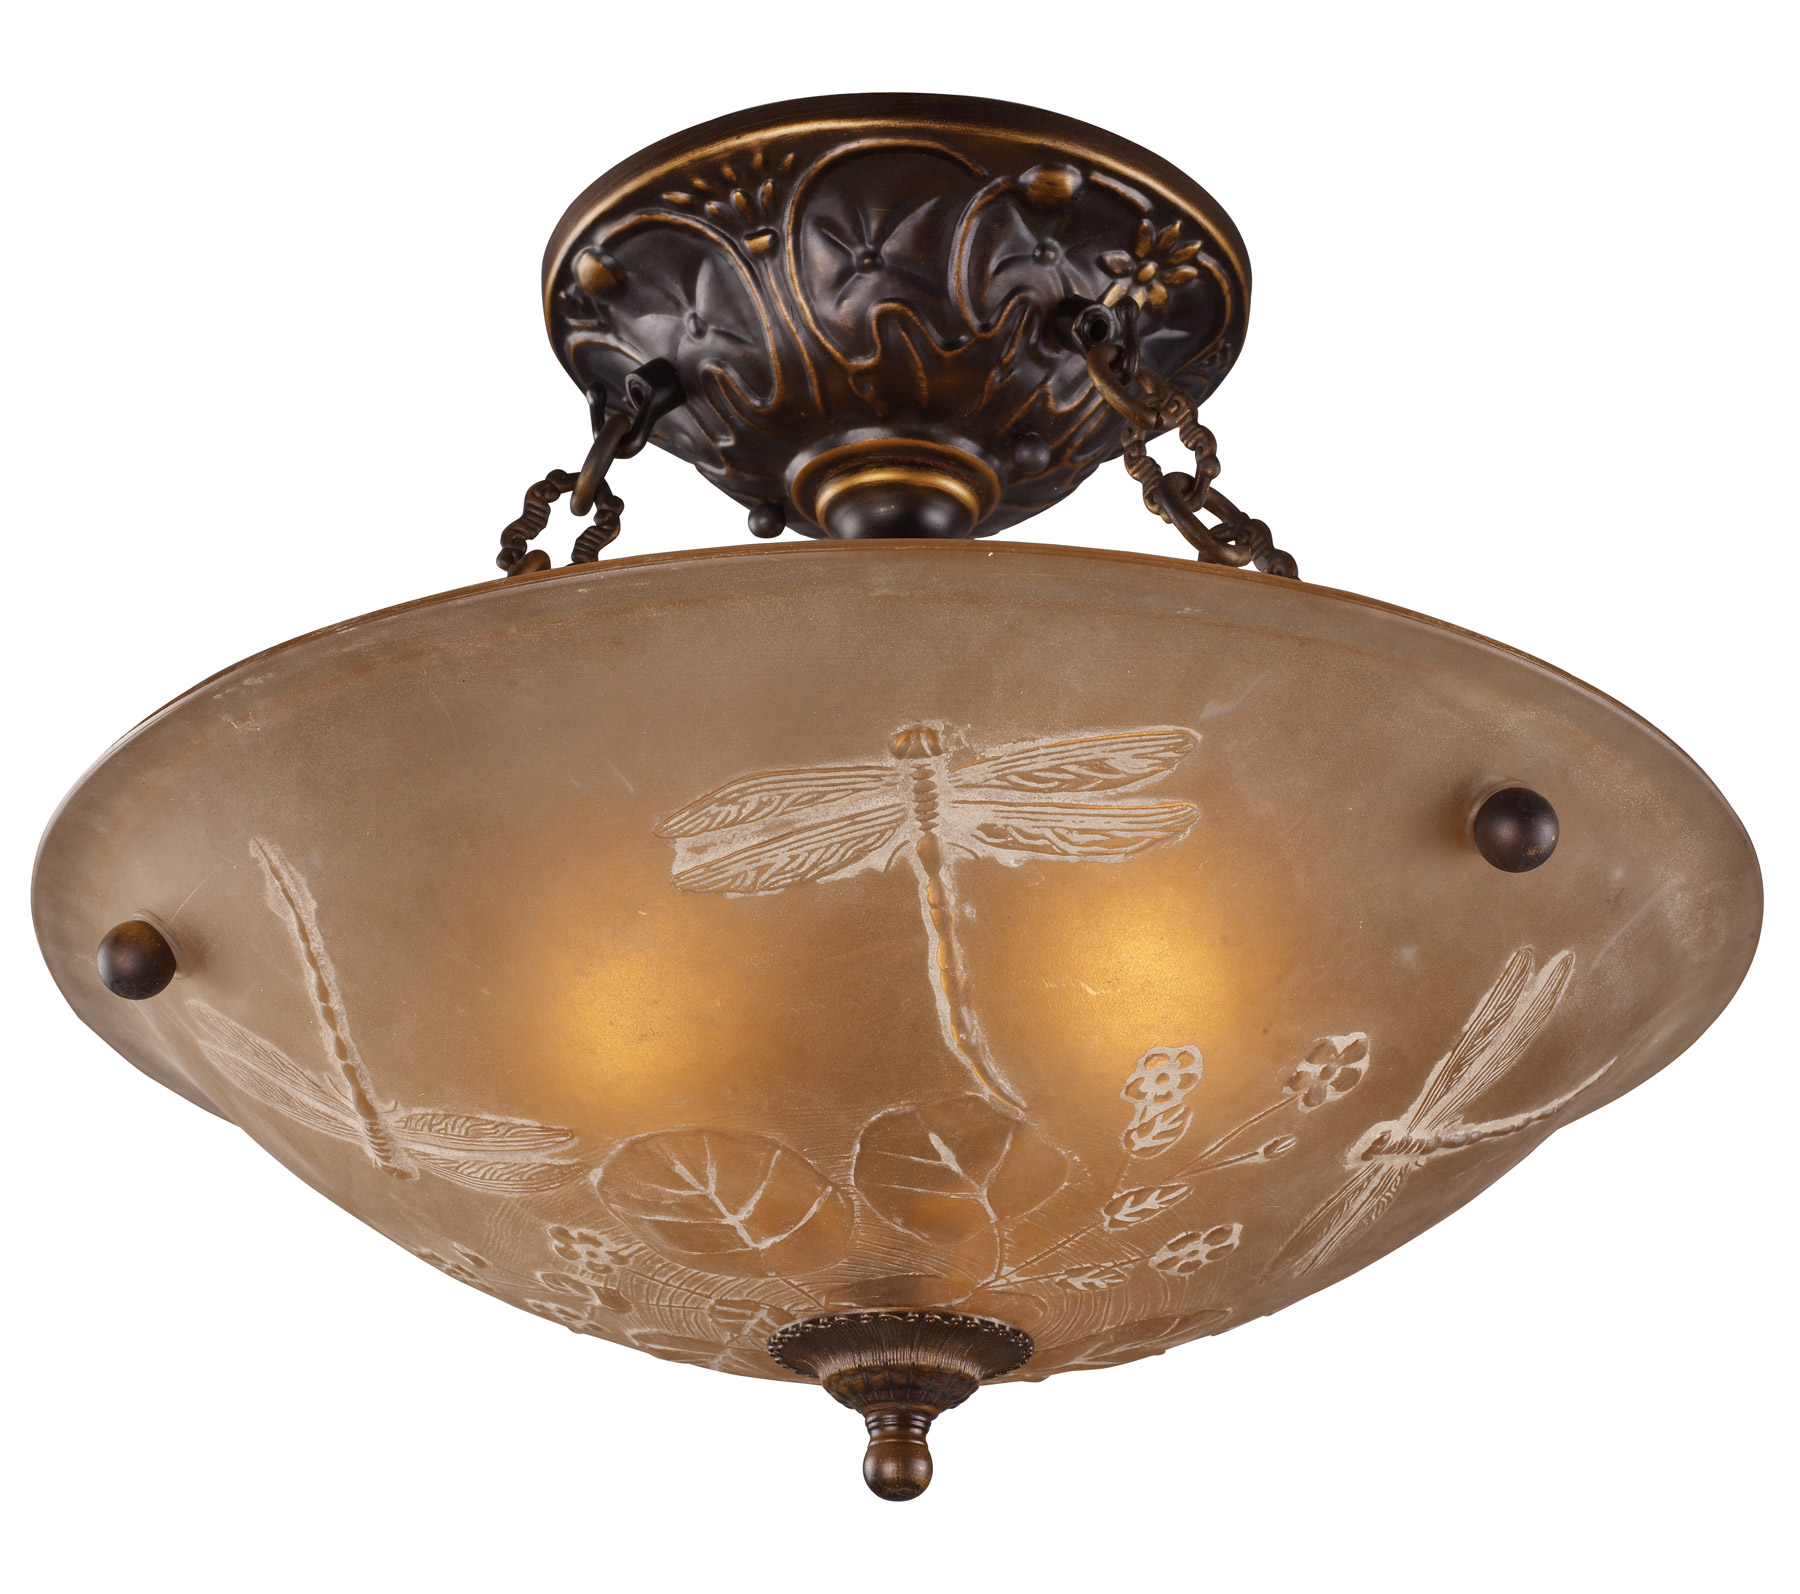 Lighting 08096 agb restoration semi flush ceiling fixture elk lighting 08096 agb restoration semi flush ceiling fixture arubaitofo Image collections